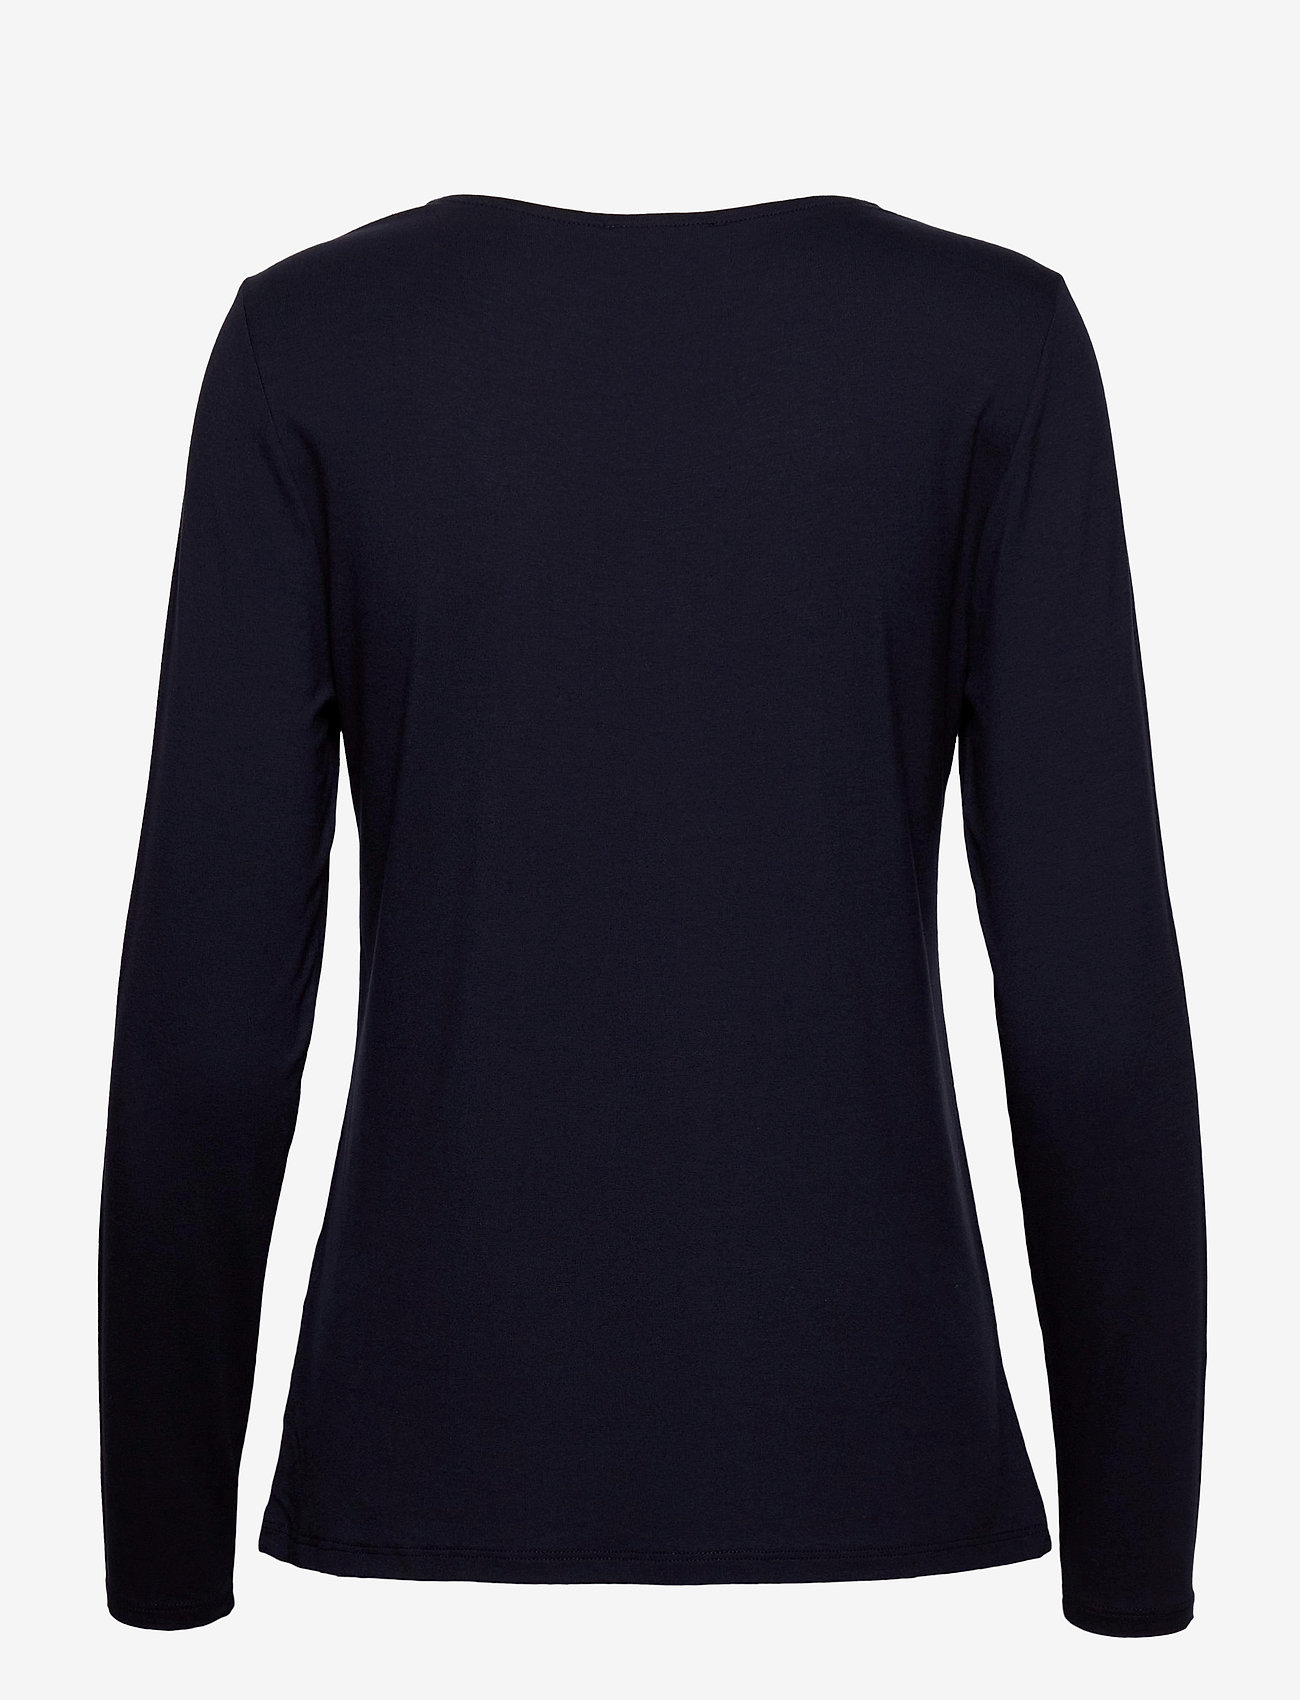 Esprit Collection - T-Shirts - long-sleeved tops - navy - 1